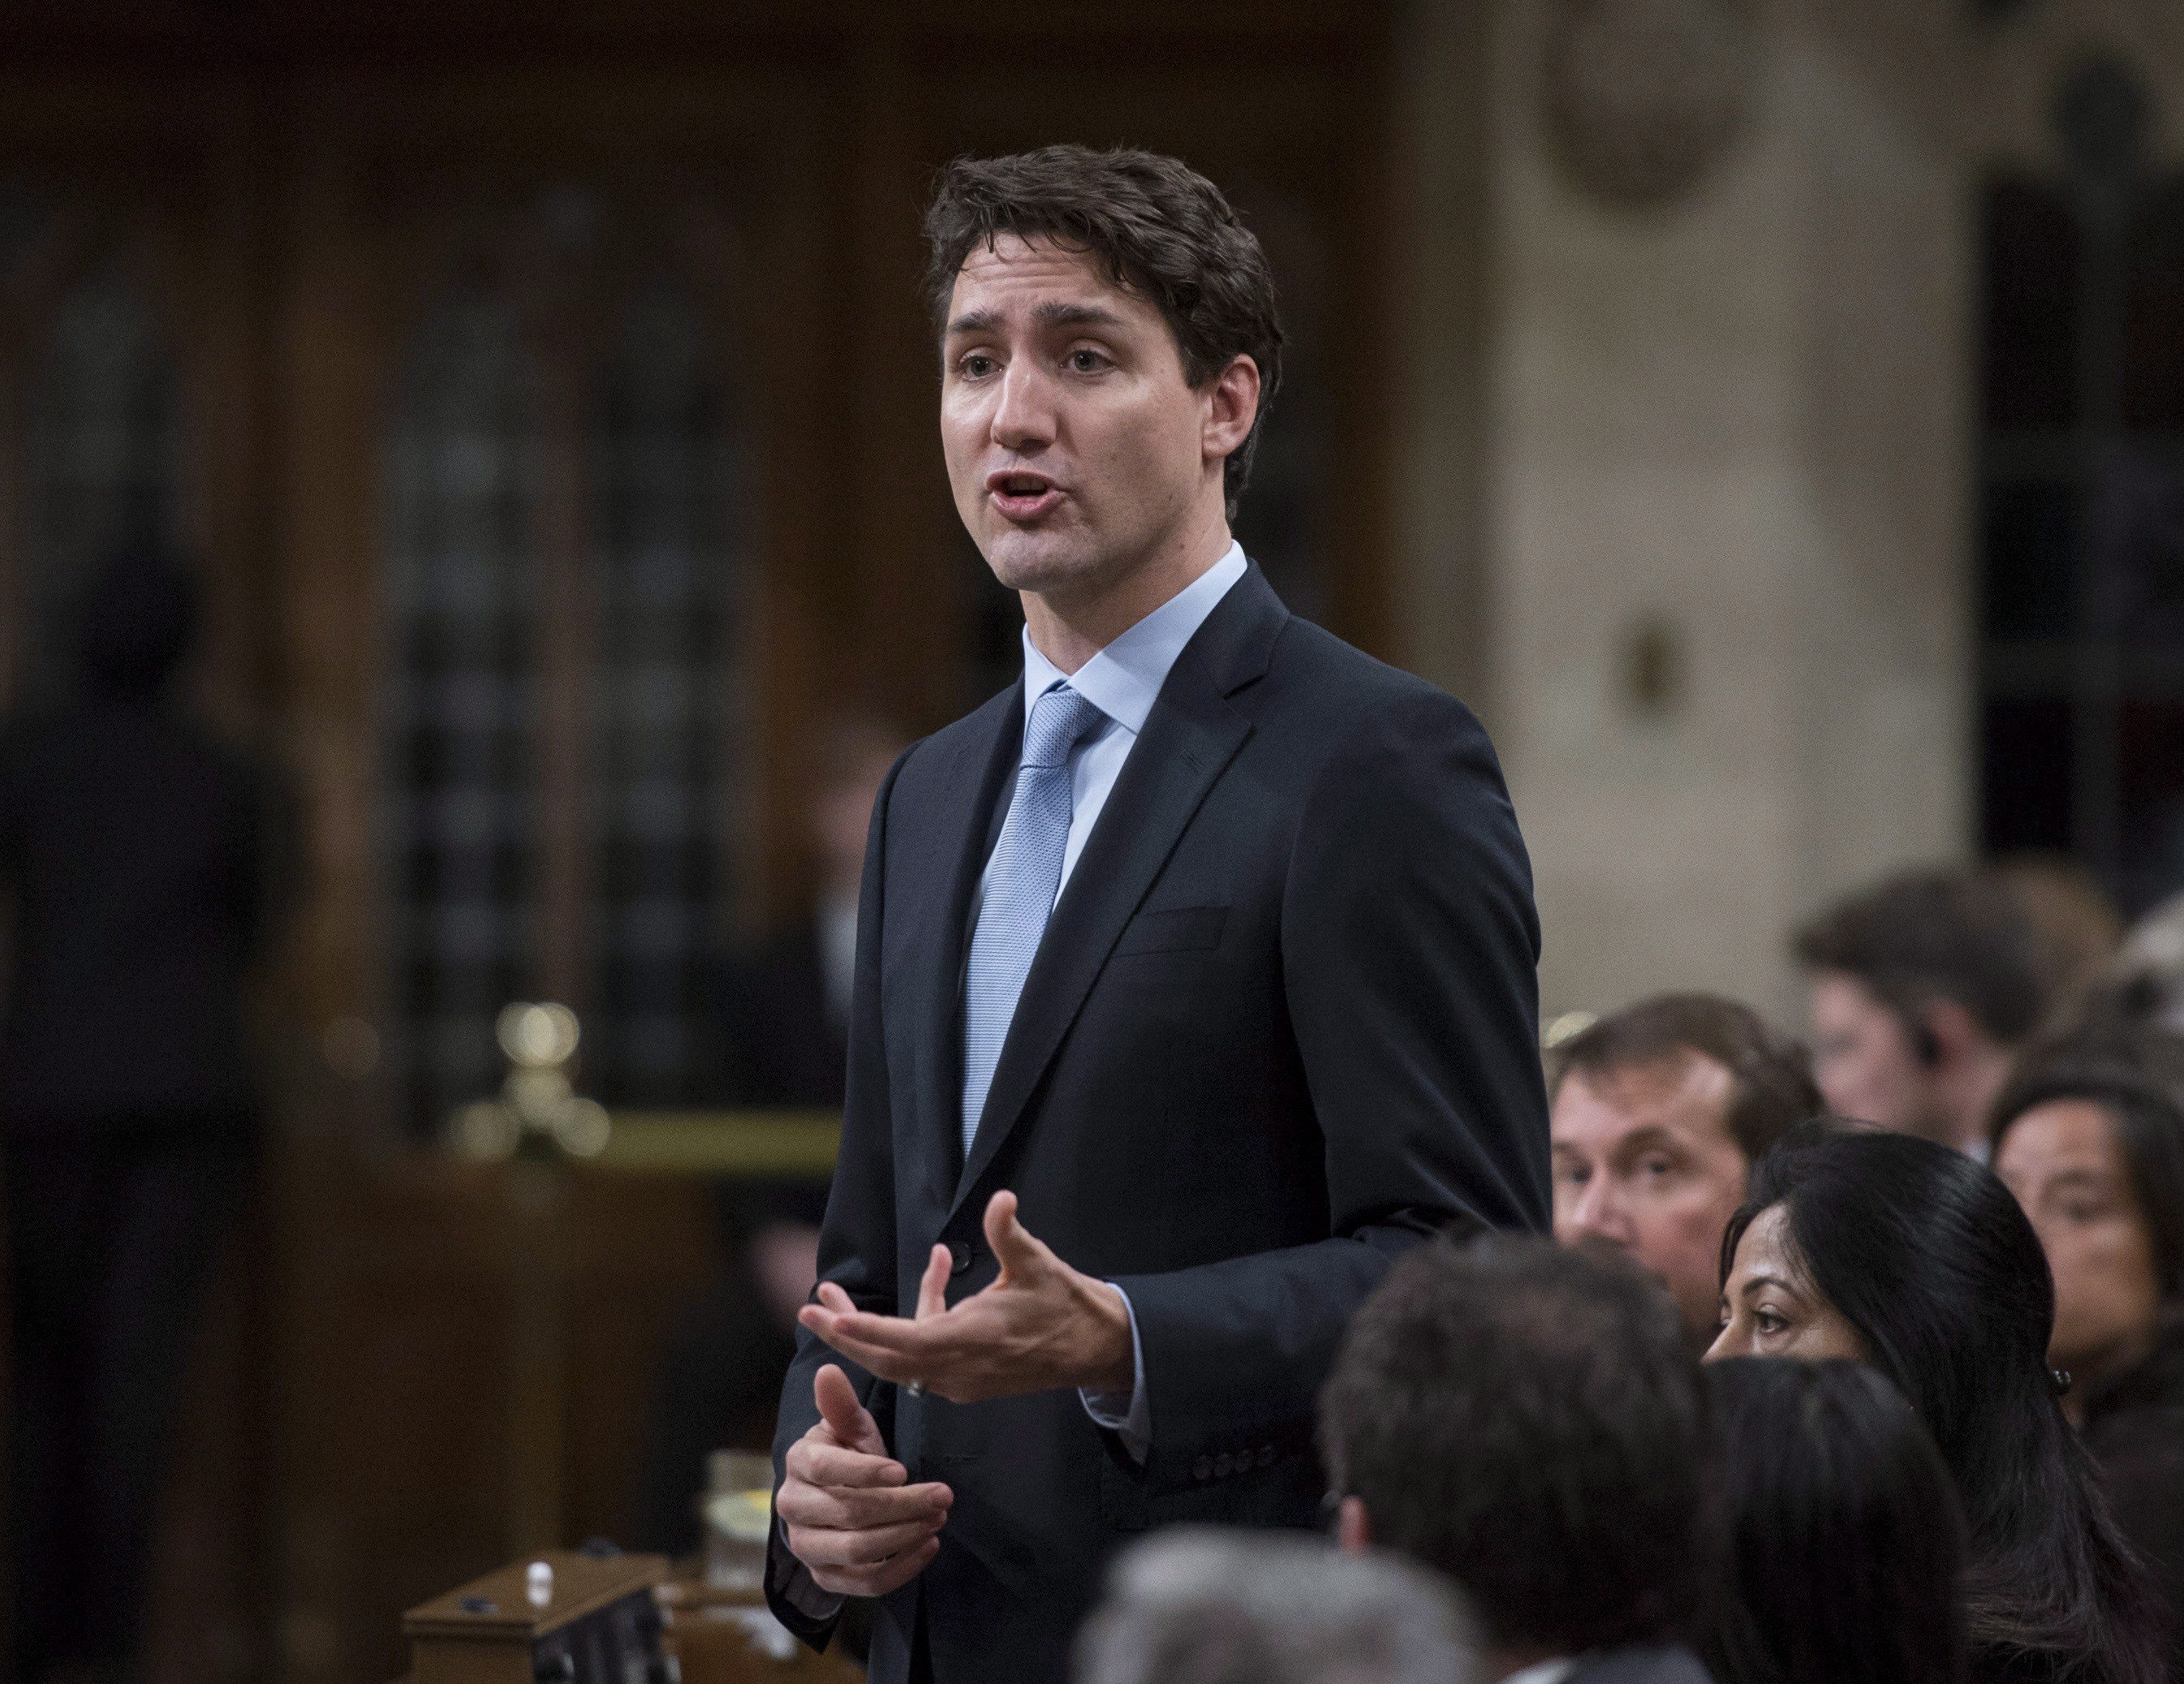 Prime Minister Justin Trudeau responds to a question on the situation in Syria during question period in the House of Commons on Parliament Hill in Ottawa on Friday, April 7, 2017. THE CANADIAN PRESS/Justin Tang